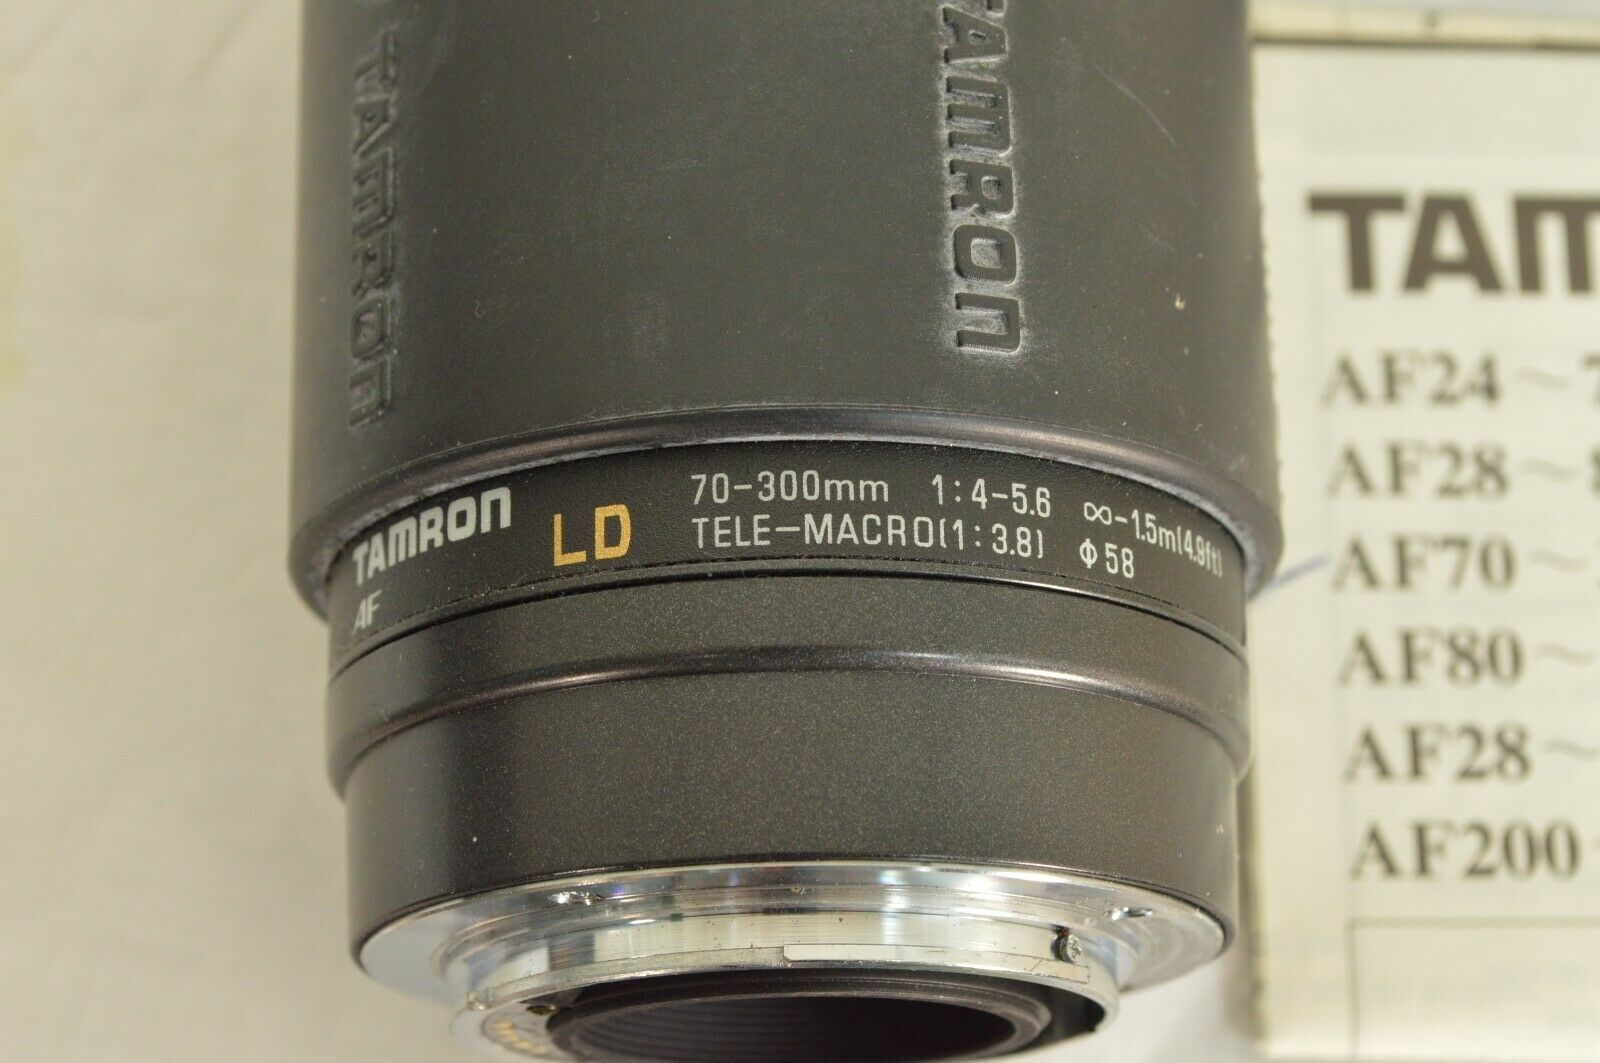 Tamron LD 70-300mm f/4.0-5.6 LD AF camera lens for Sony image 11